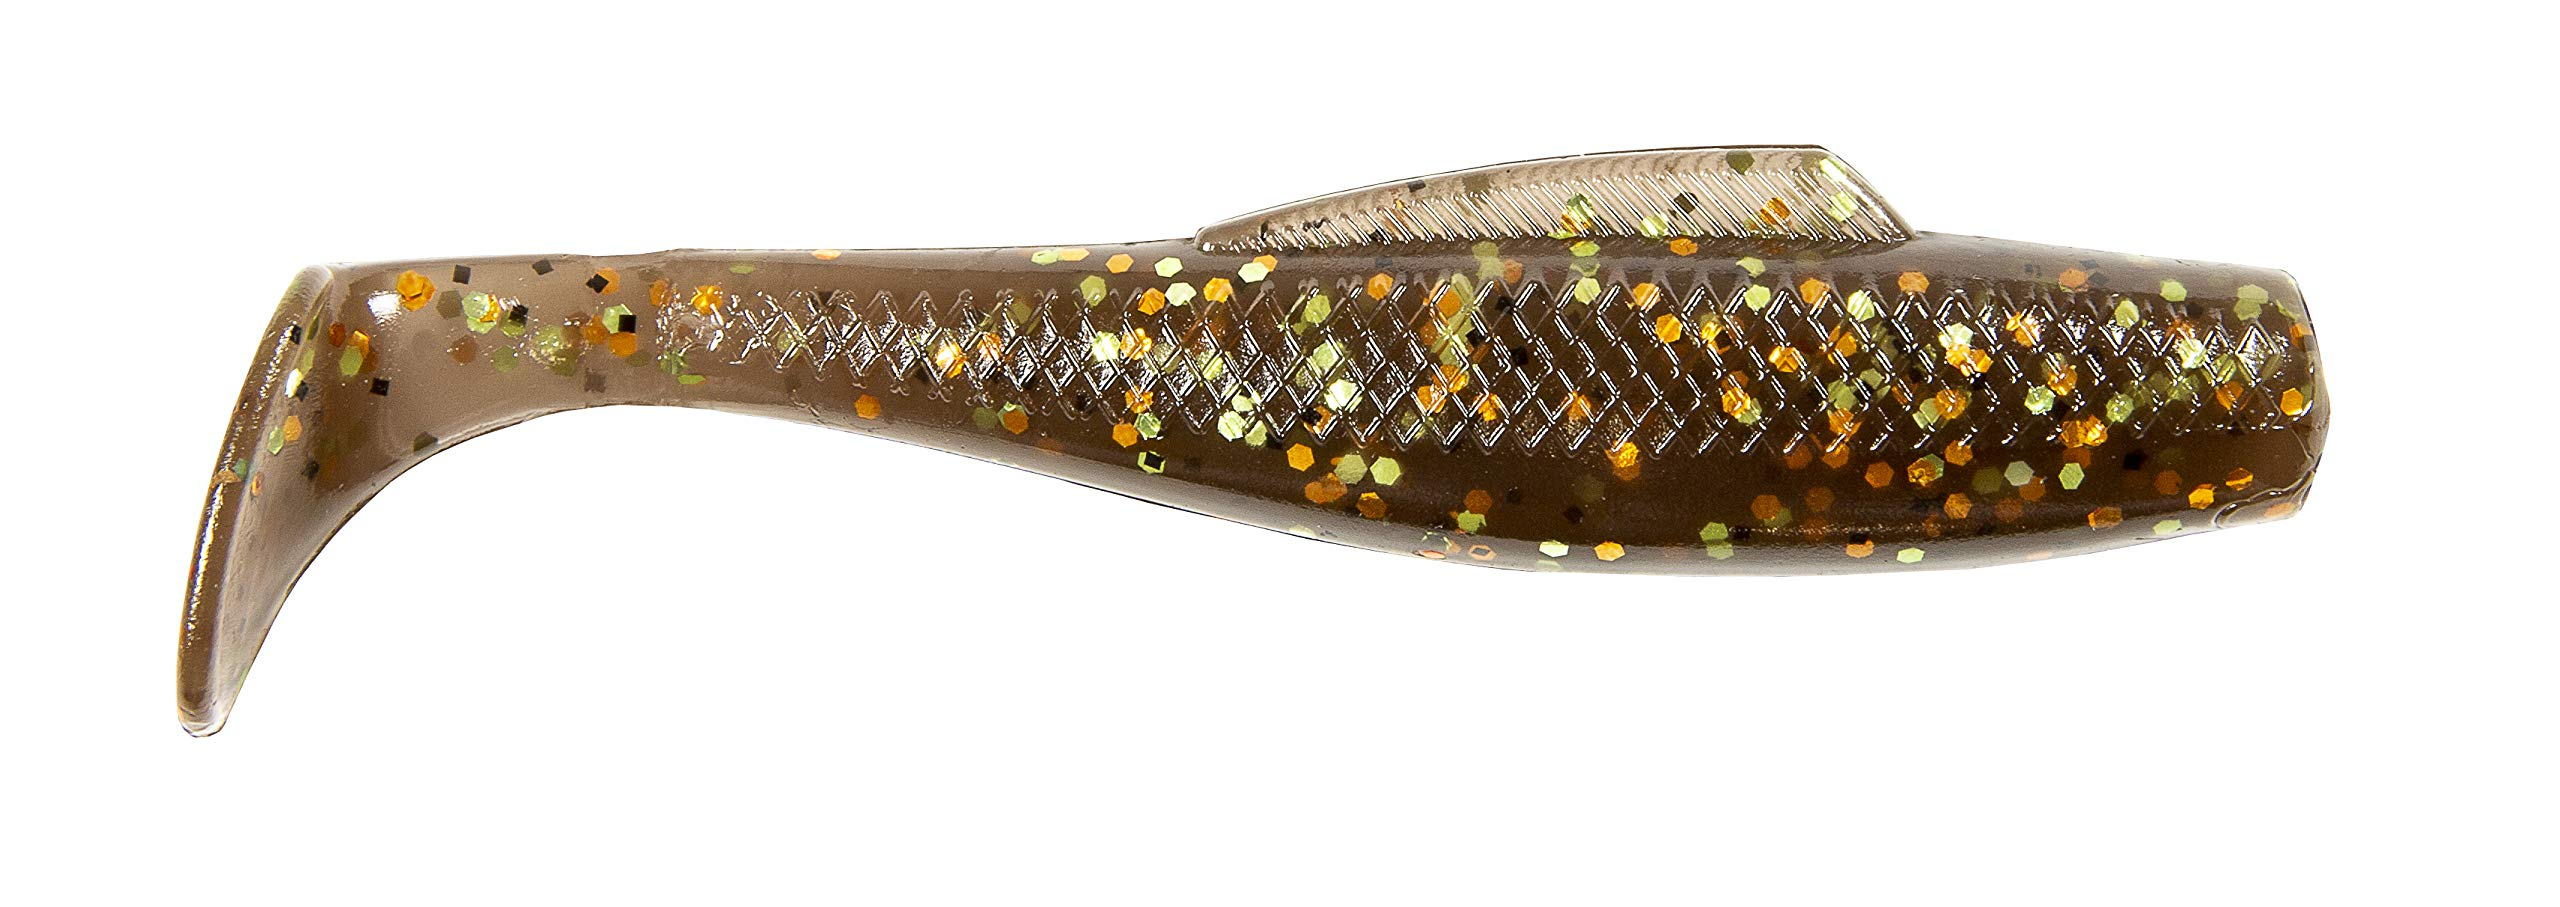 """75 pack Paddle Tail Swim Bait PEARL 3/"""" Paddle Tail Shad USA"""